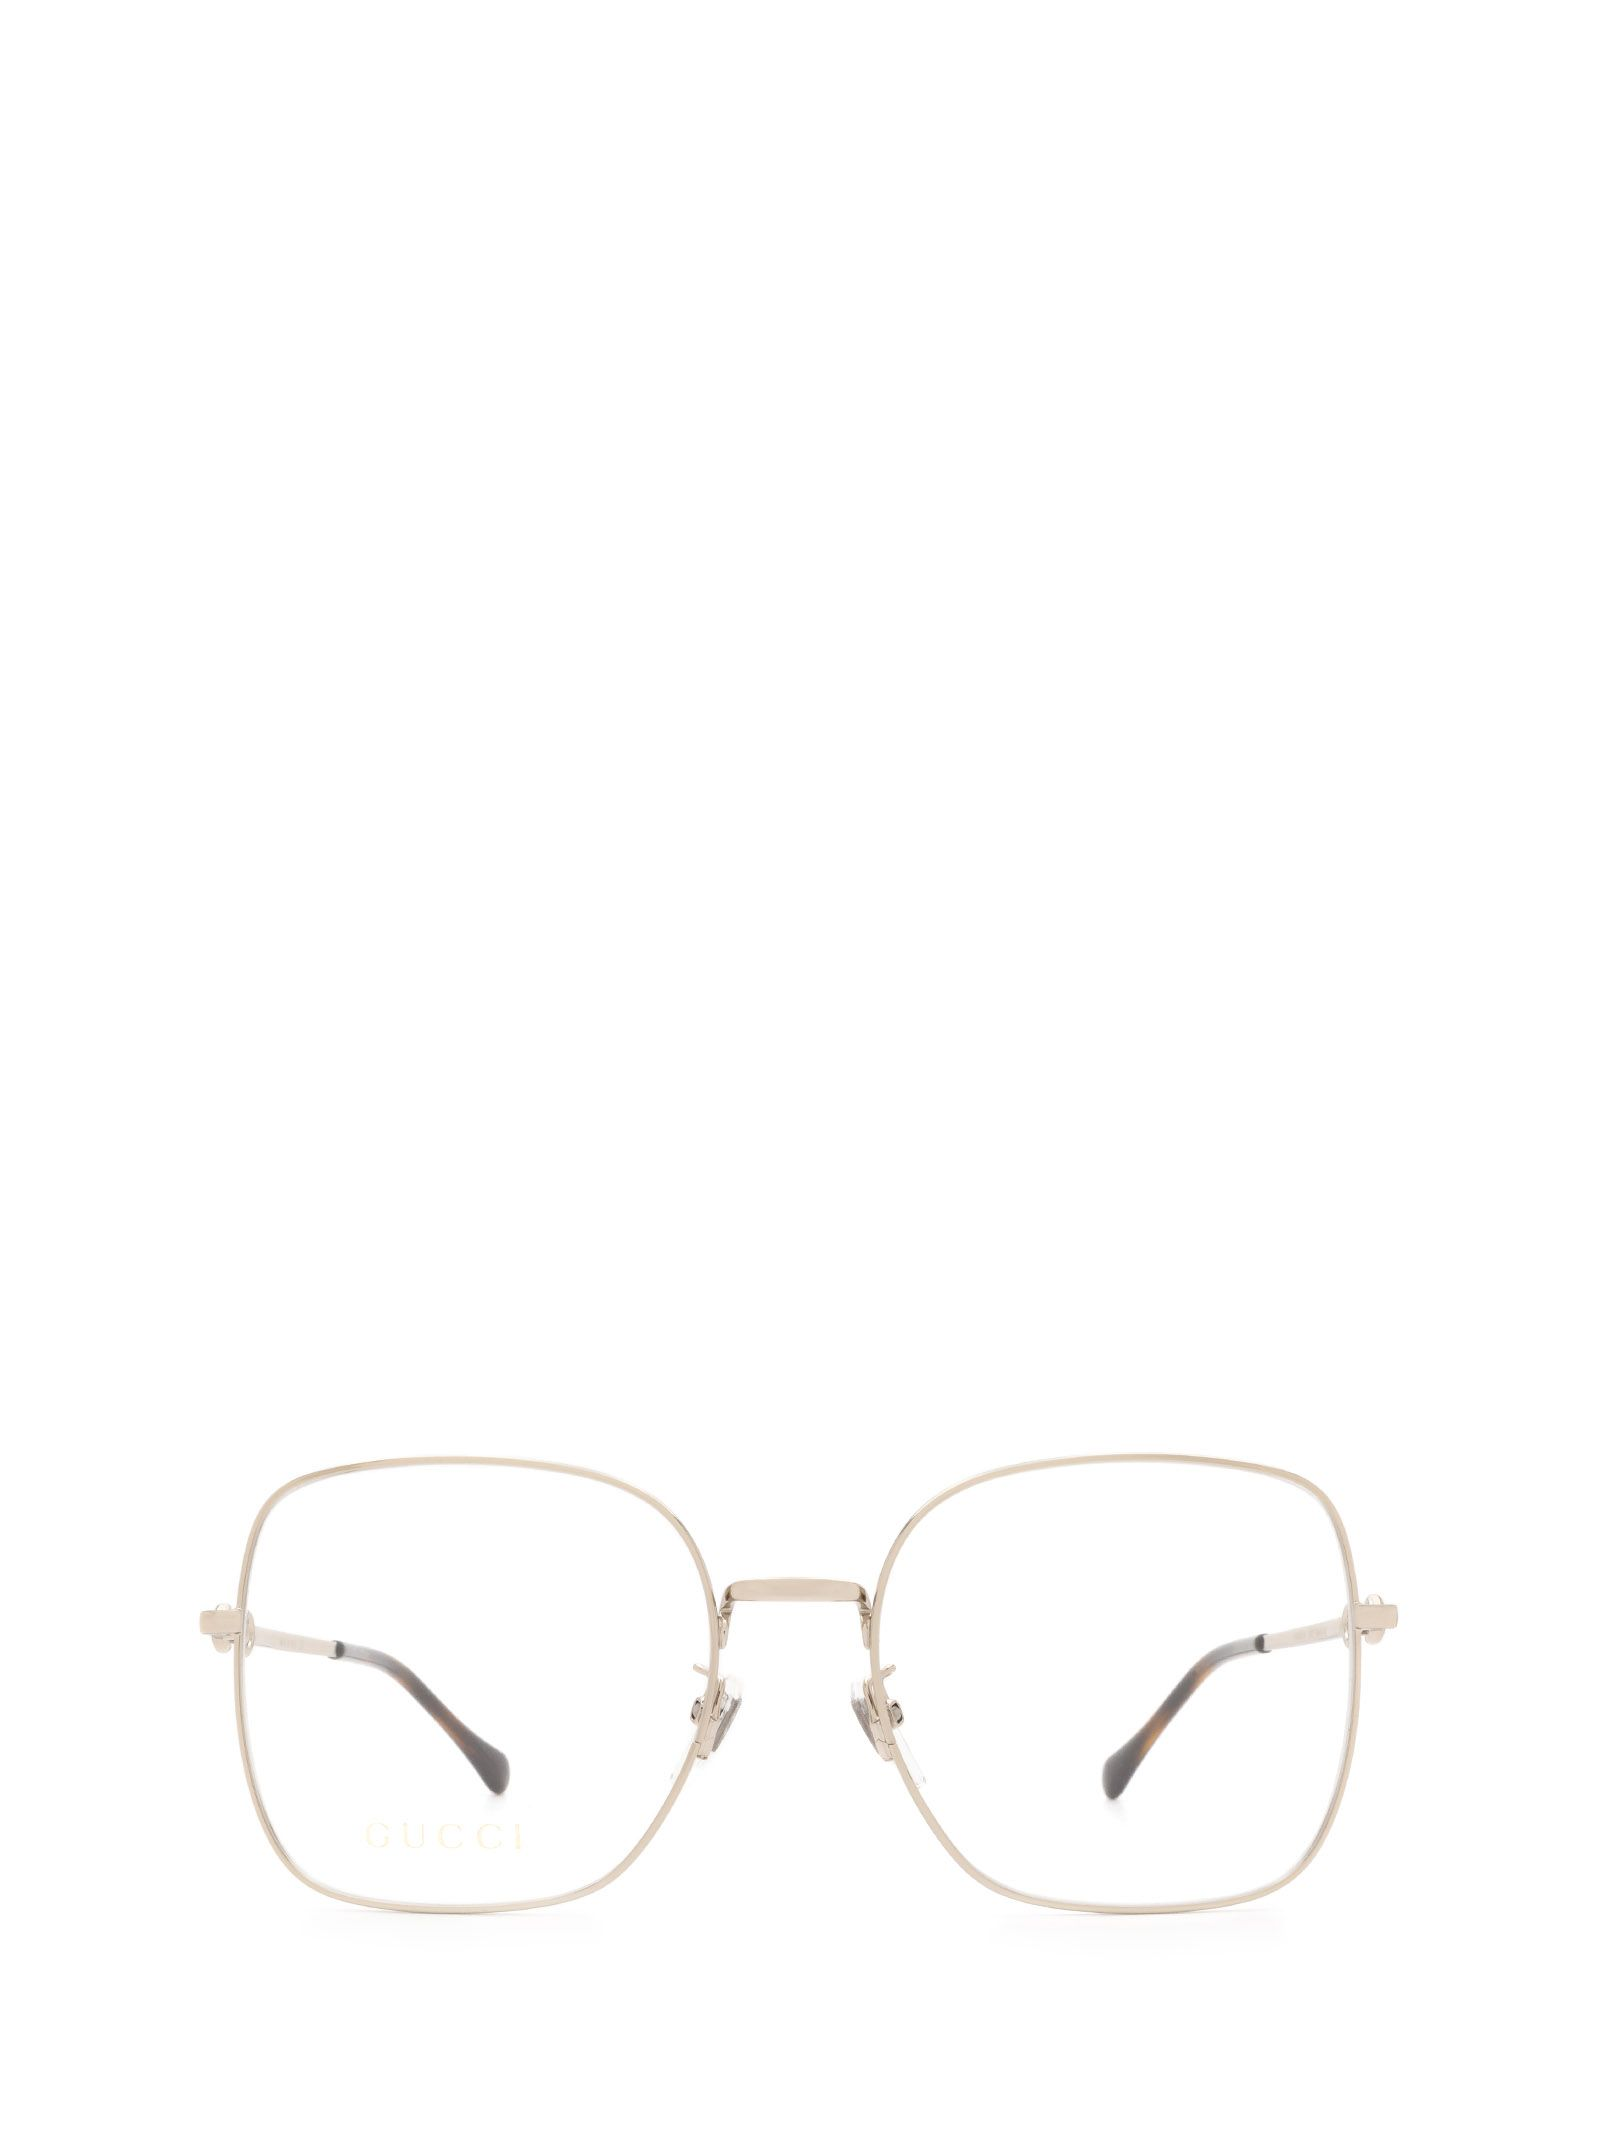 Gucci Women's Yellow Metal Glasses